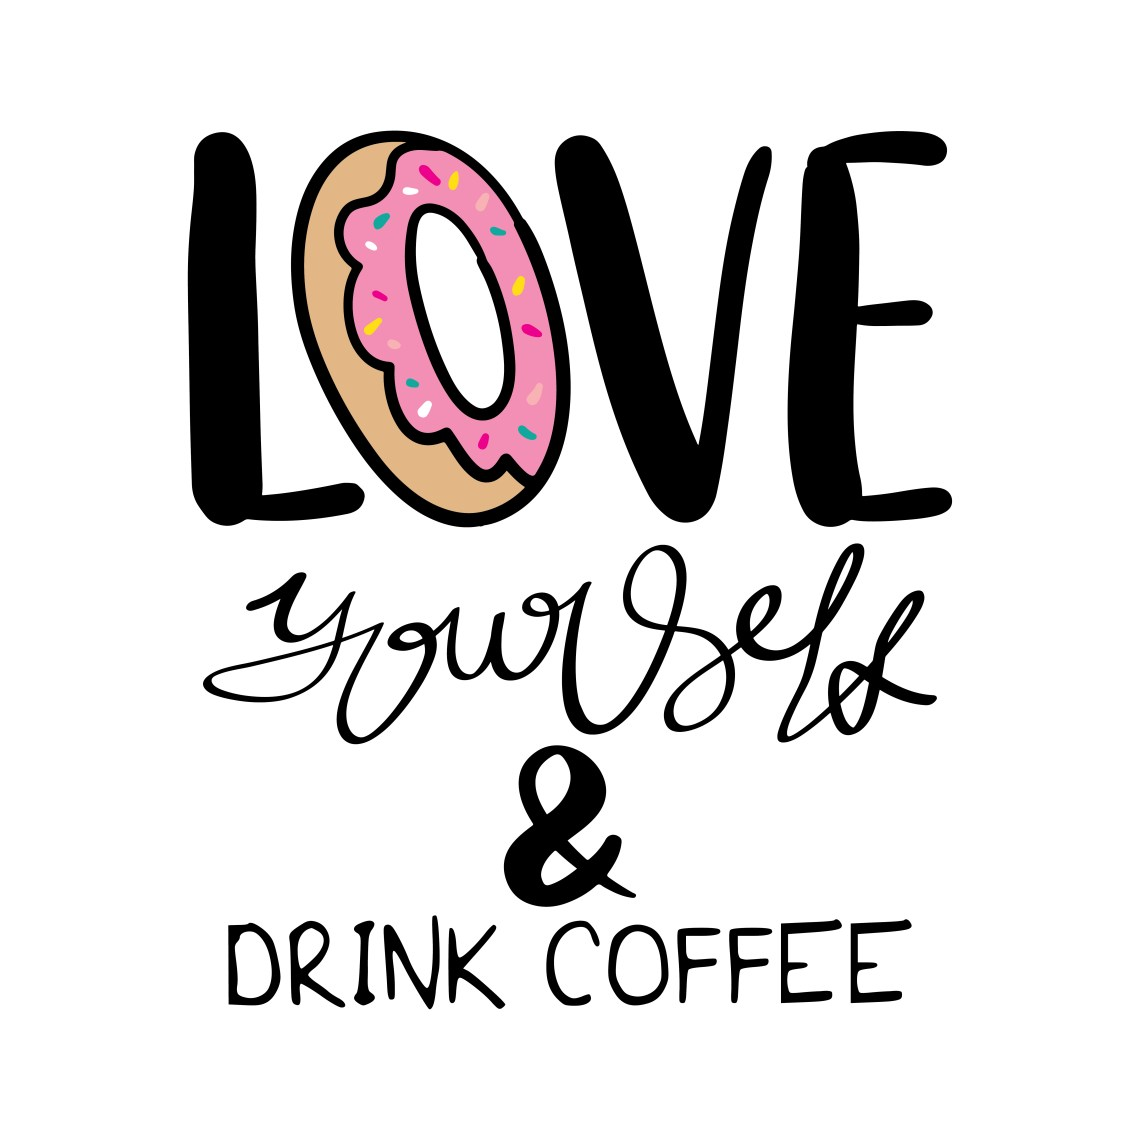 Download Love yourself and drink coffee - Download Free Vectors ...